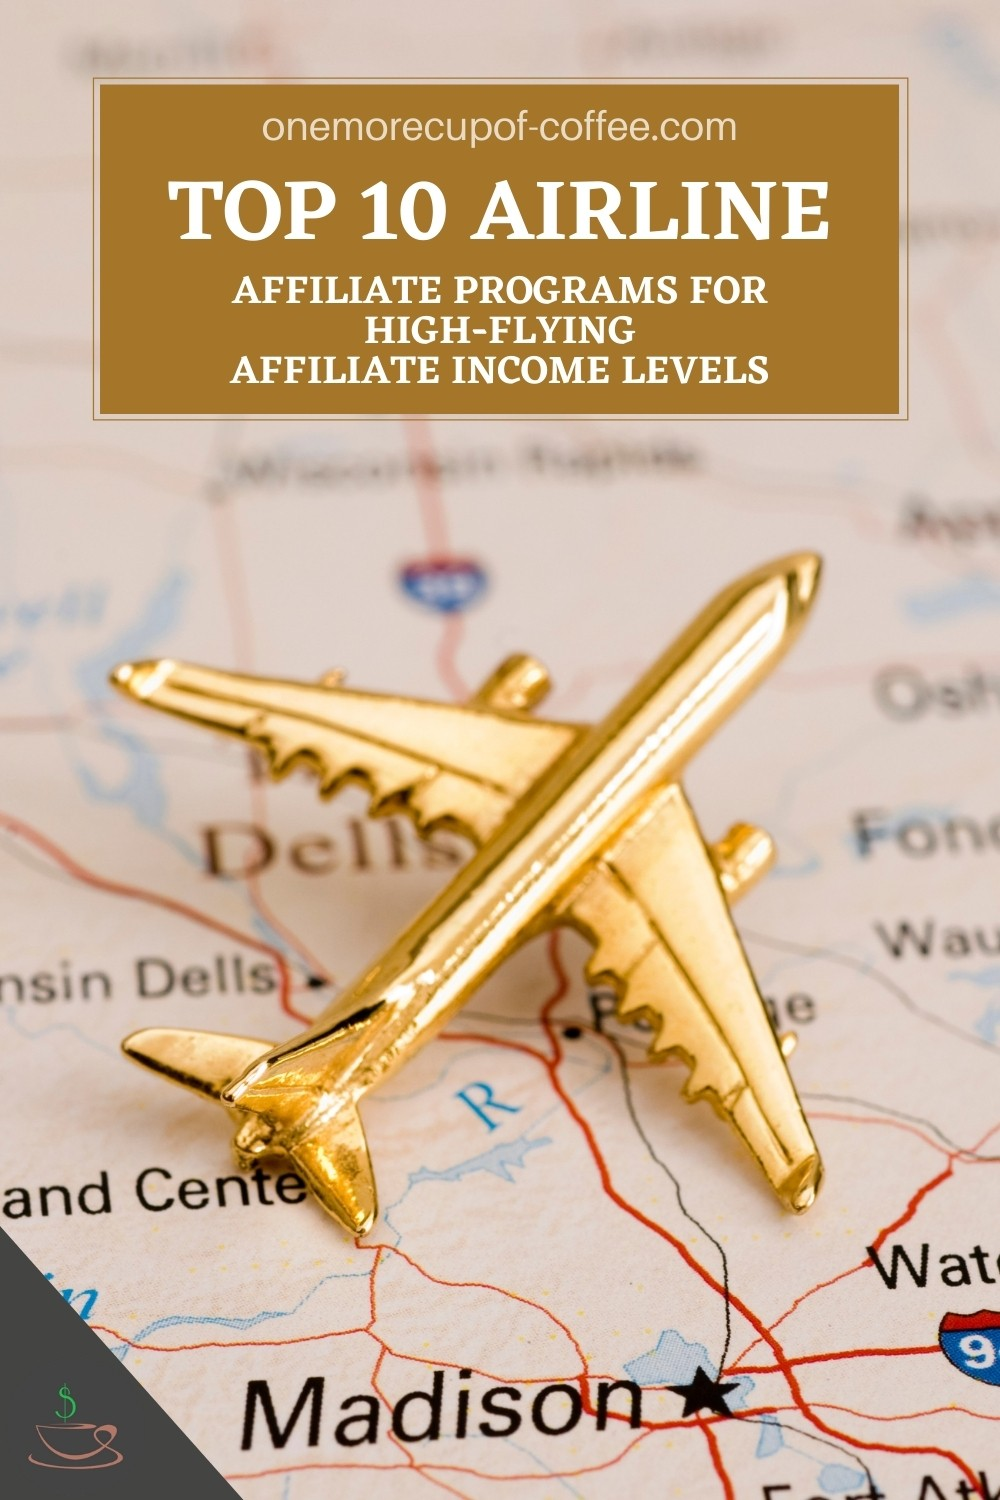 """closeup image of a small gold airplane figurine resting on a map, with text overlay in gold banner """"Top 10 Airline Affiliate Programs For High-Flying Affiliate Income Levels"""""""